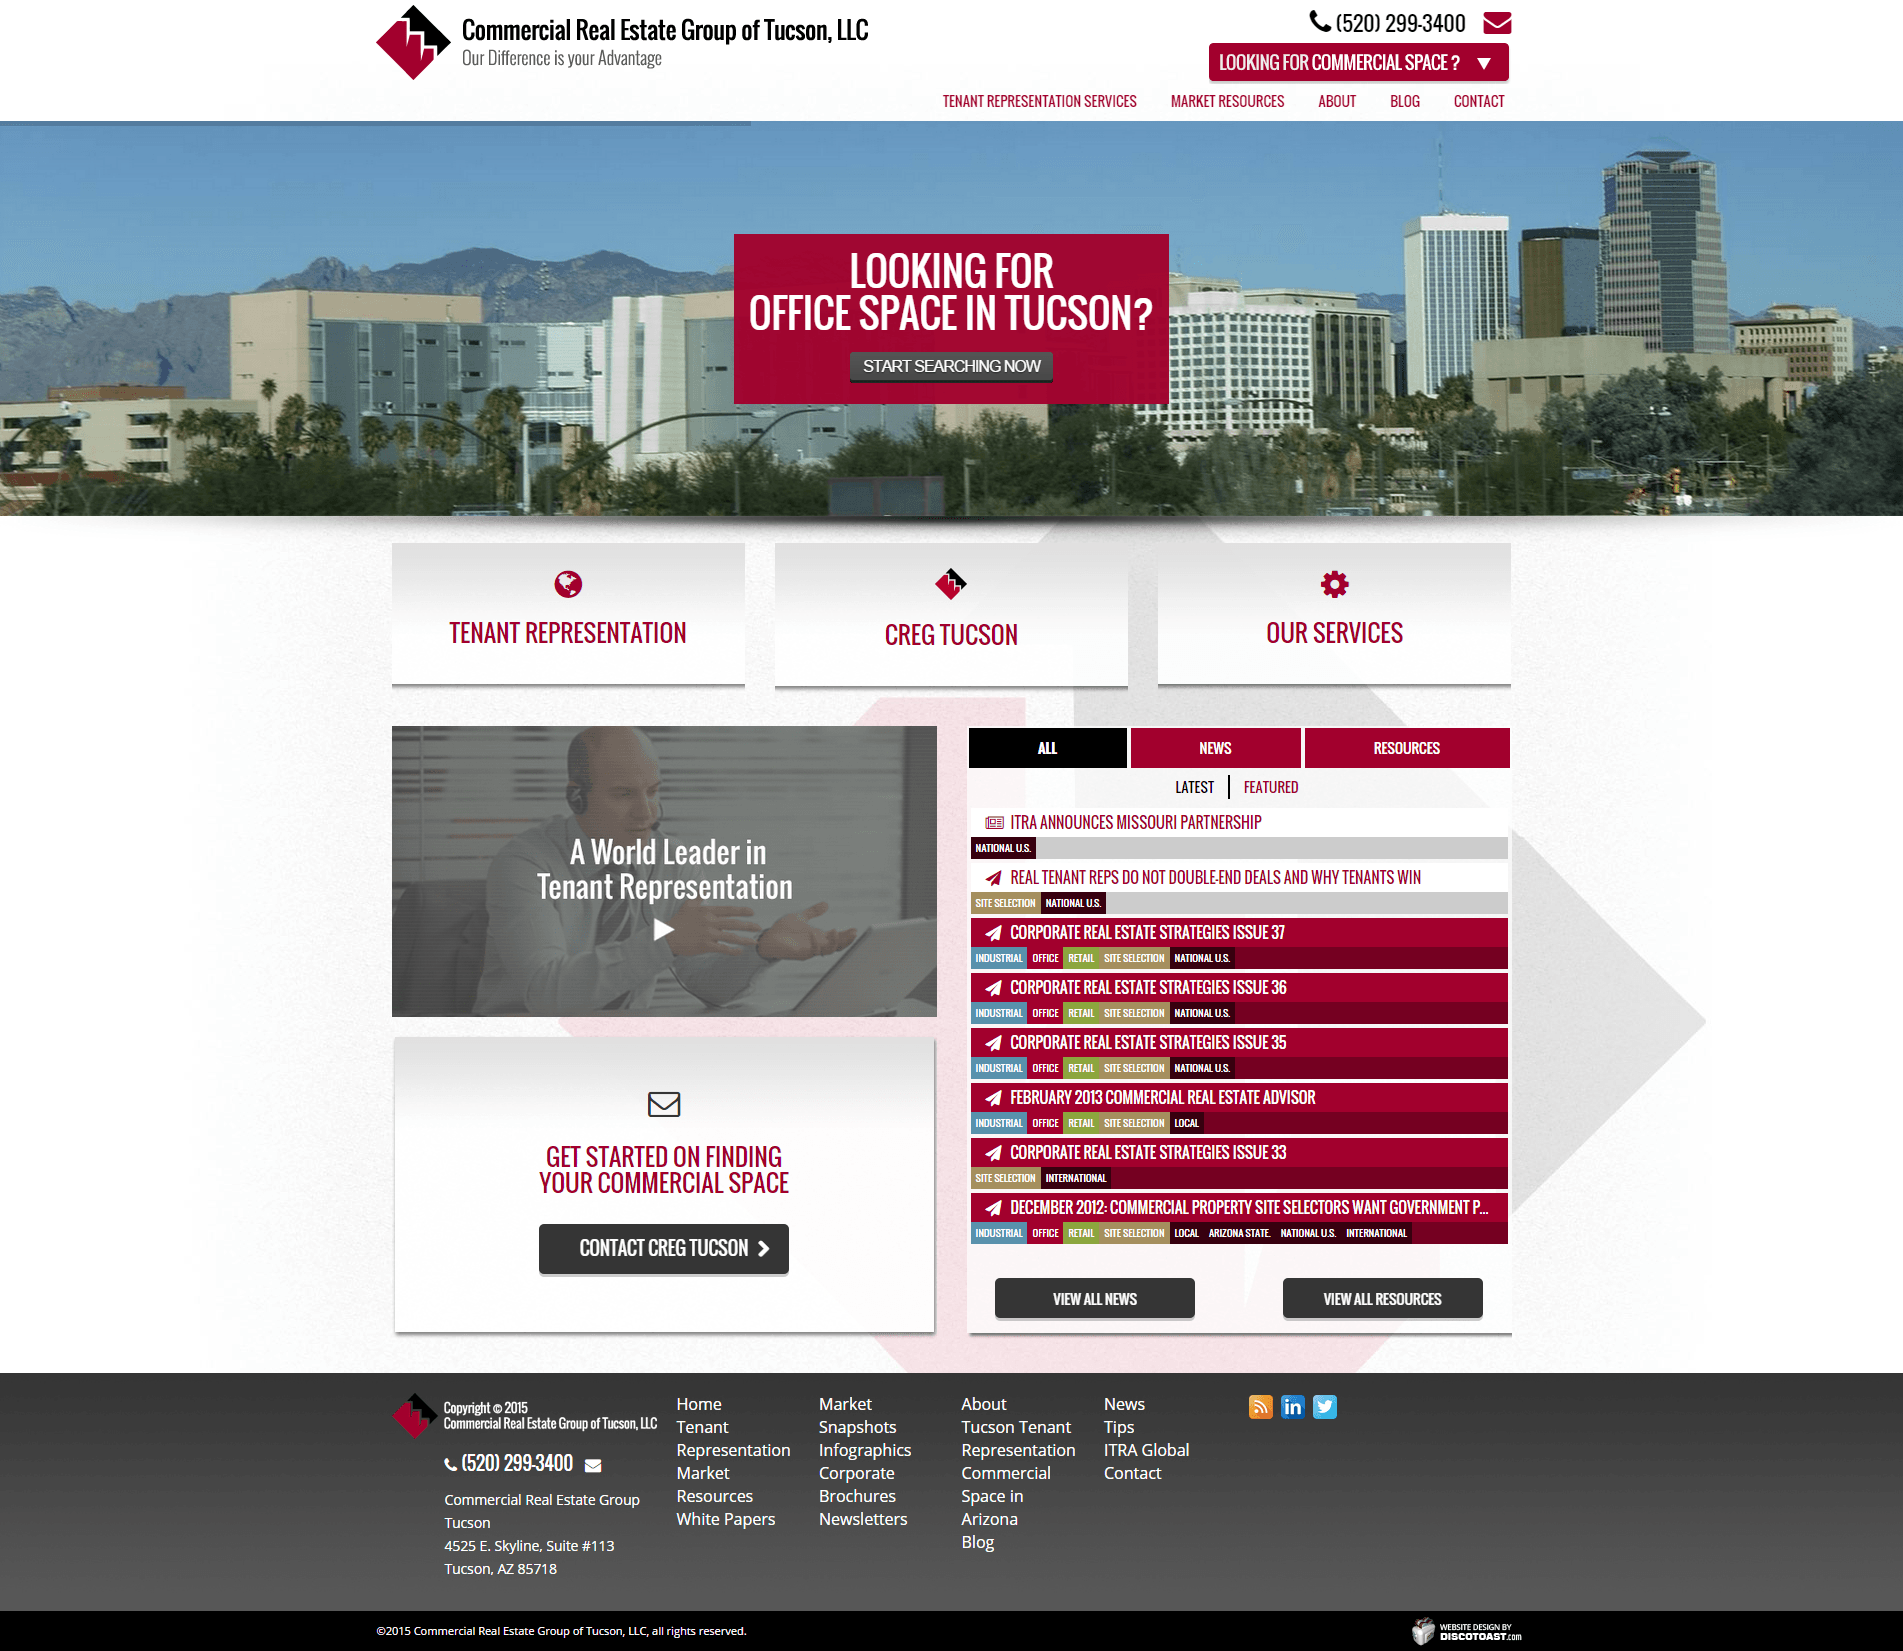 2015 Wordpress Design Portfolio Commercial Real Estate Group of Tucson  LLC